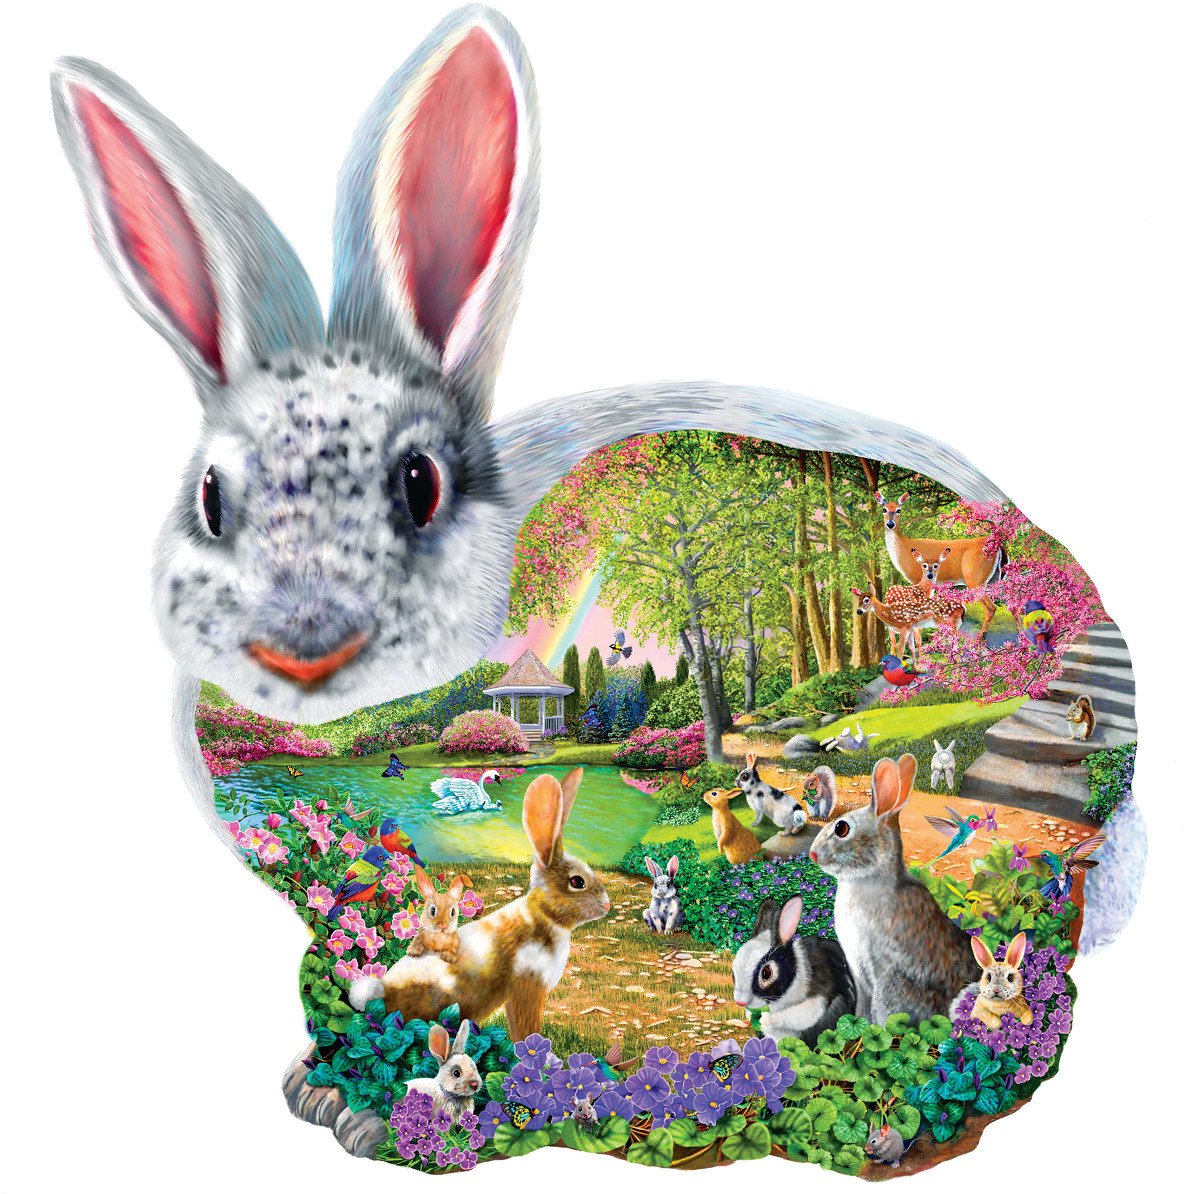 sunsout-mary-thompson-bunny-hollow-1000-teile-puzzle-sunsout-95165